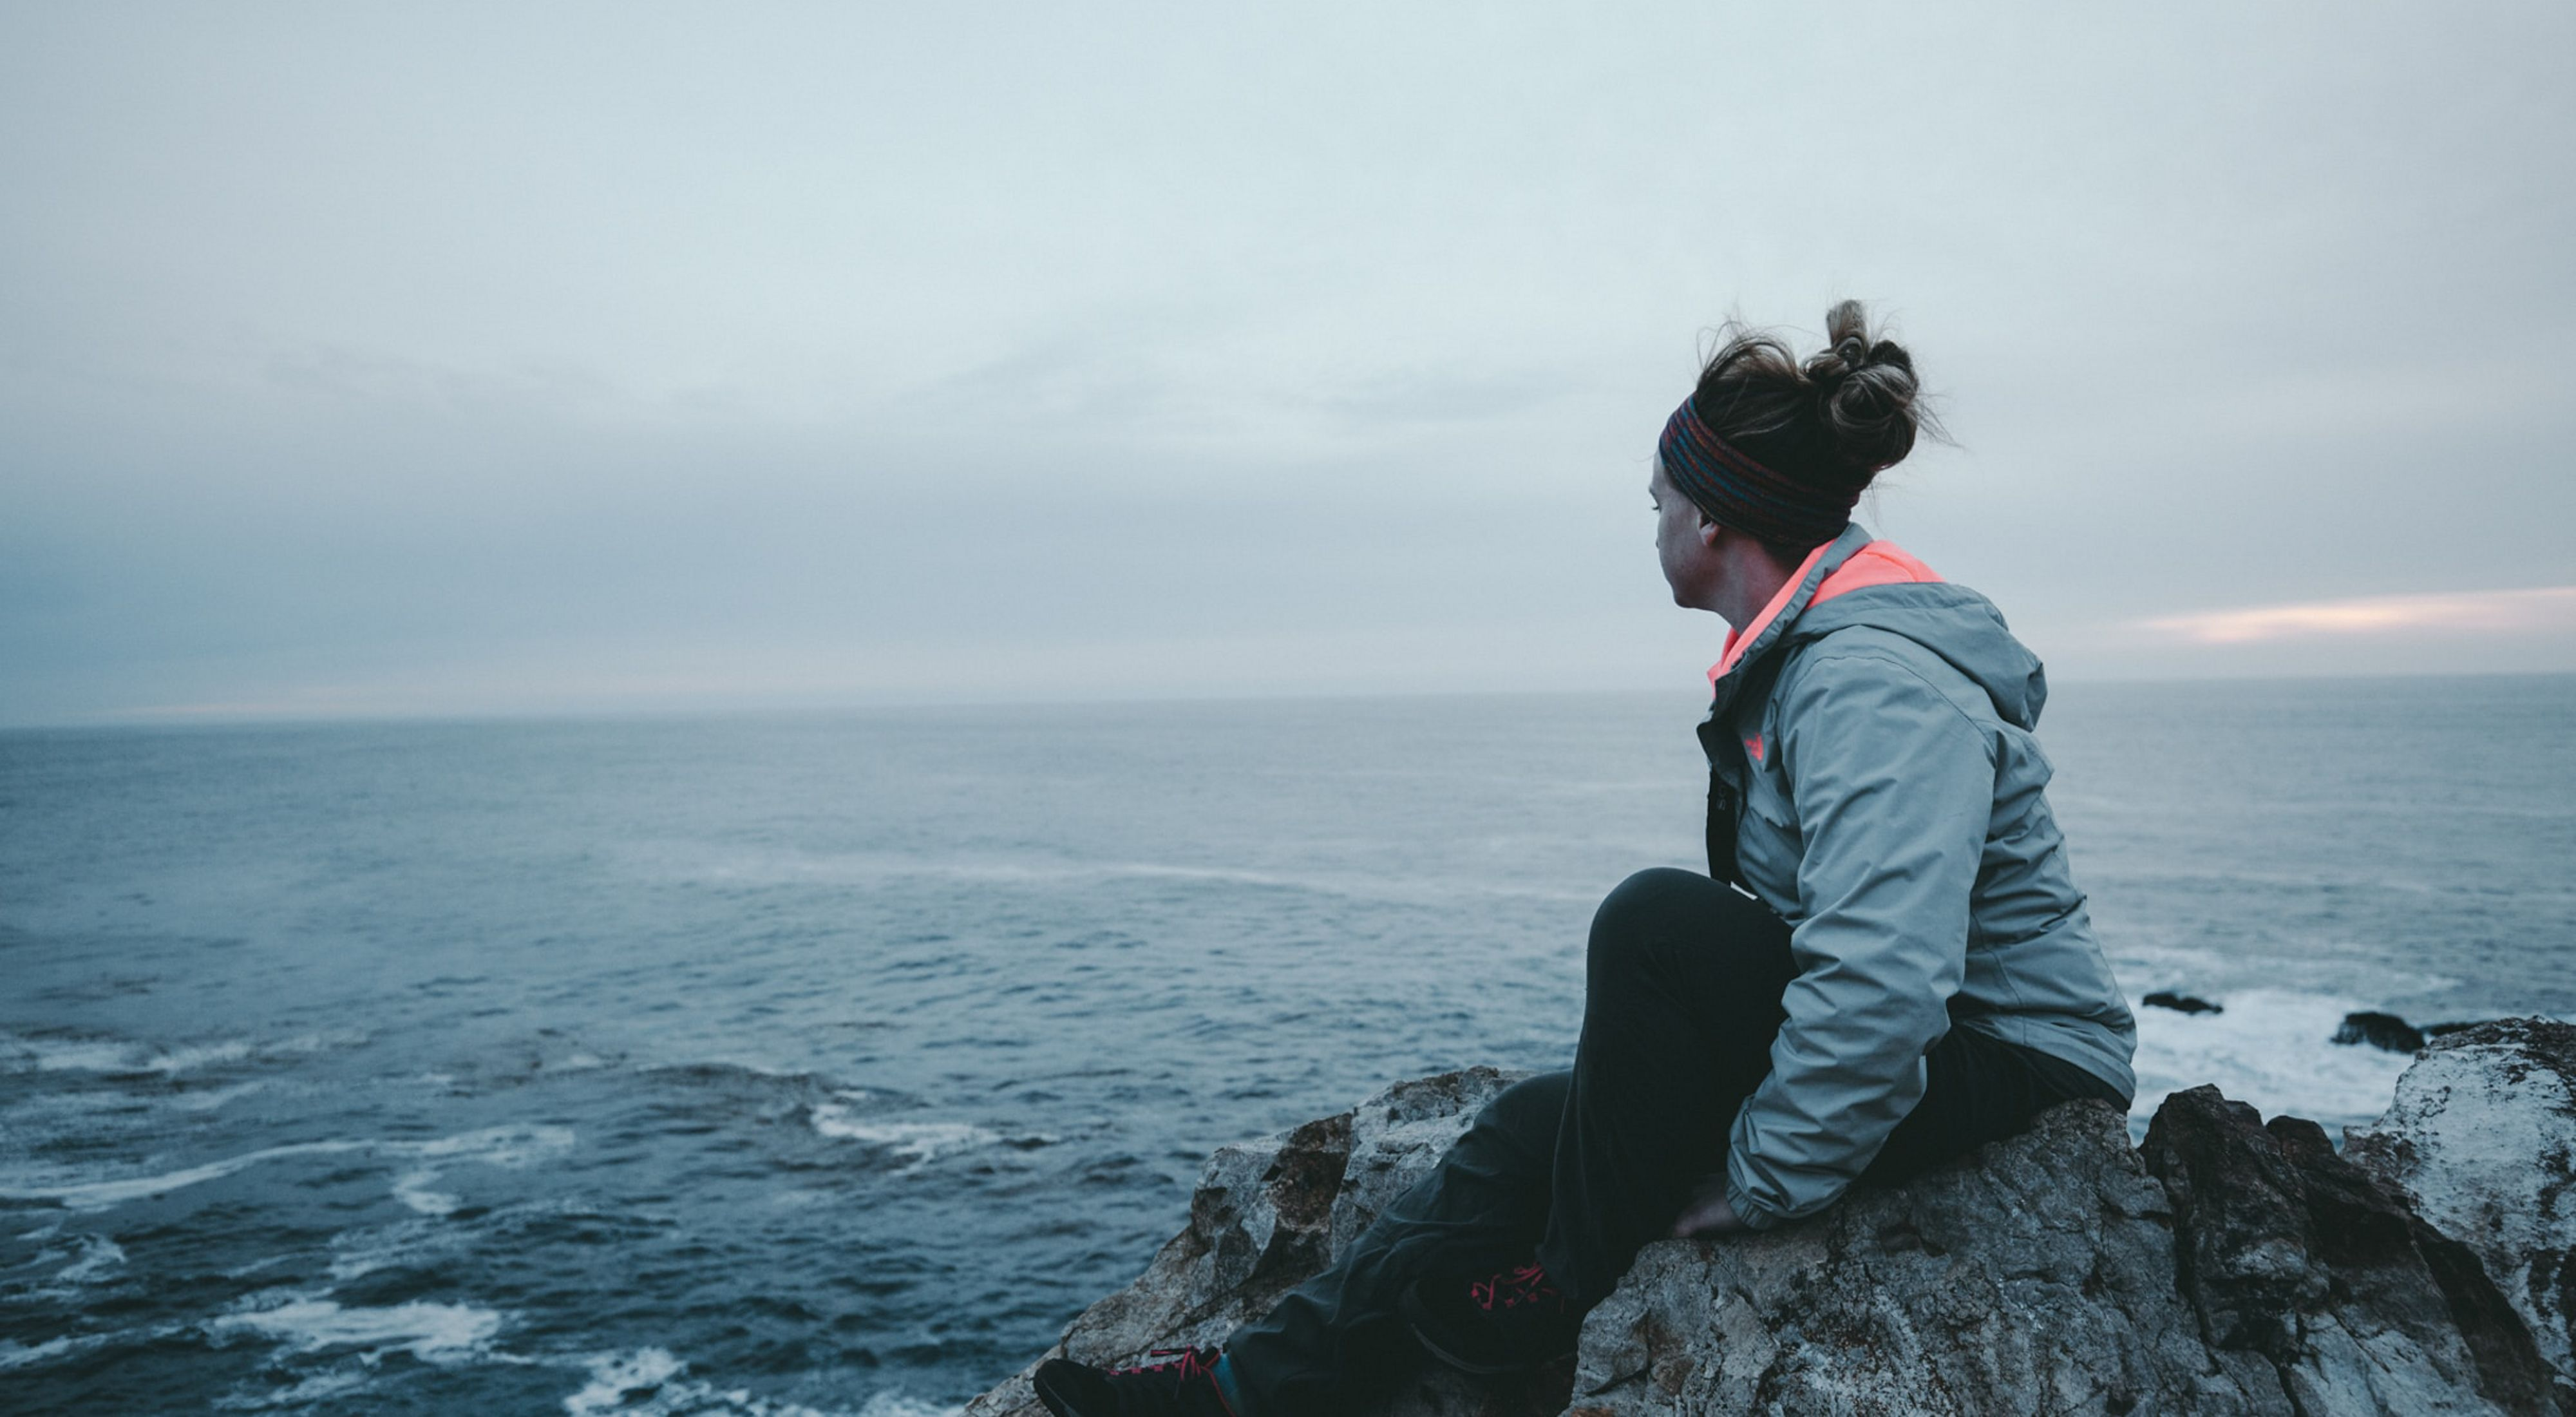 woman sits on rocky seashore looking out on ocean waves